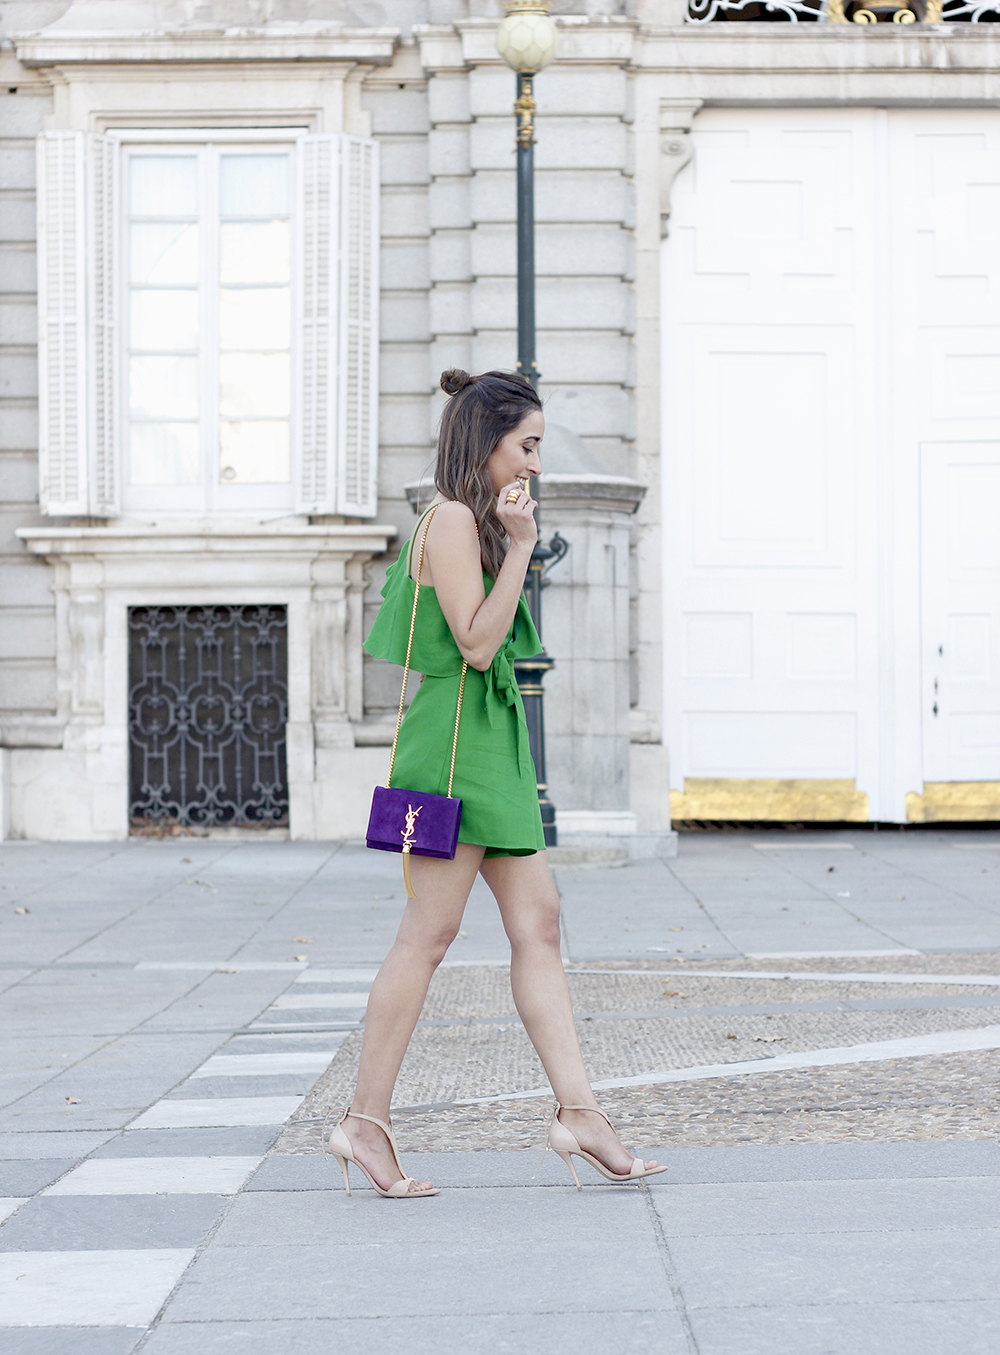 Green jumpsuit ysl bag heels uterqüe accessories summer outfit fashion03